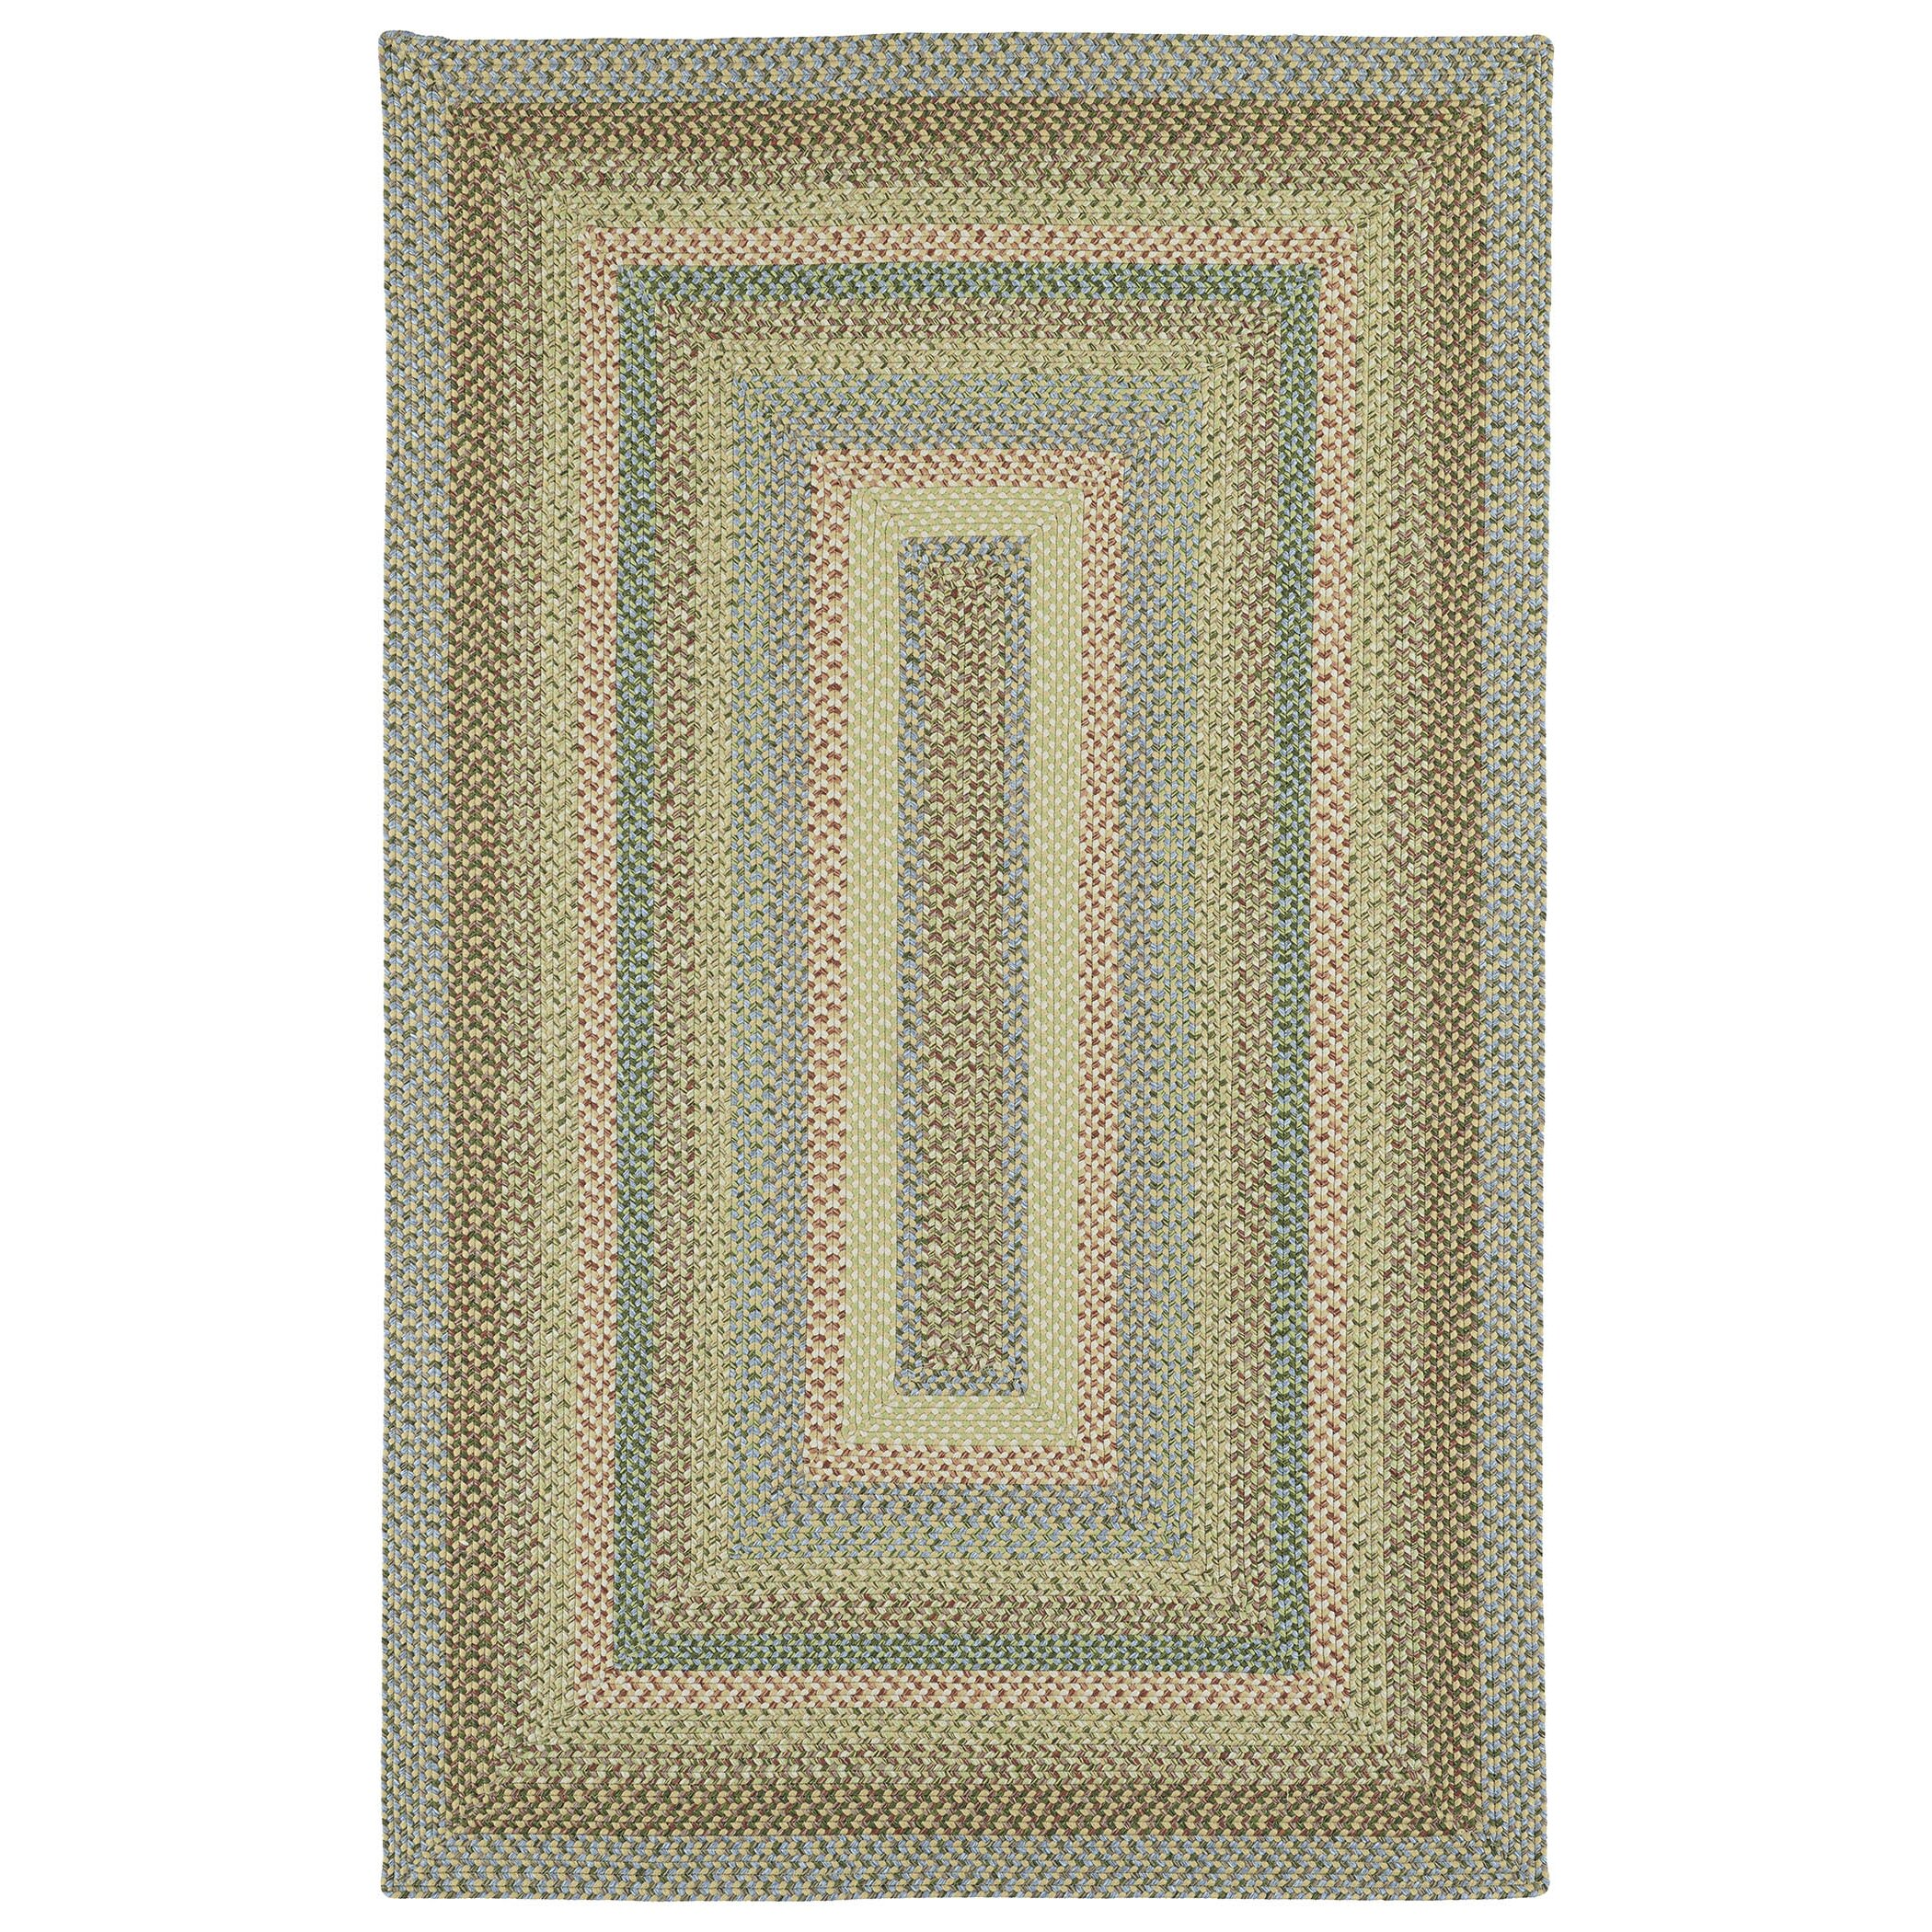 Bimini DeColores Indoor Outdoor Area Rug